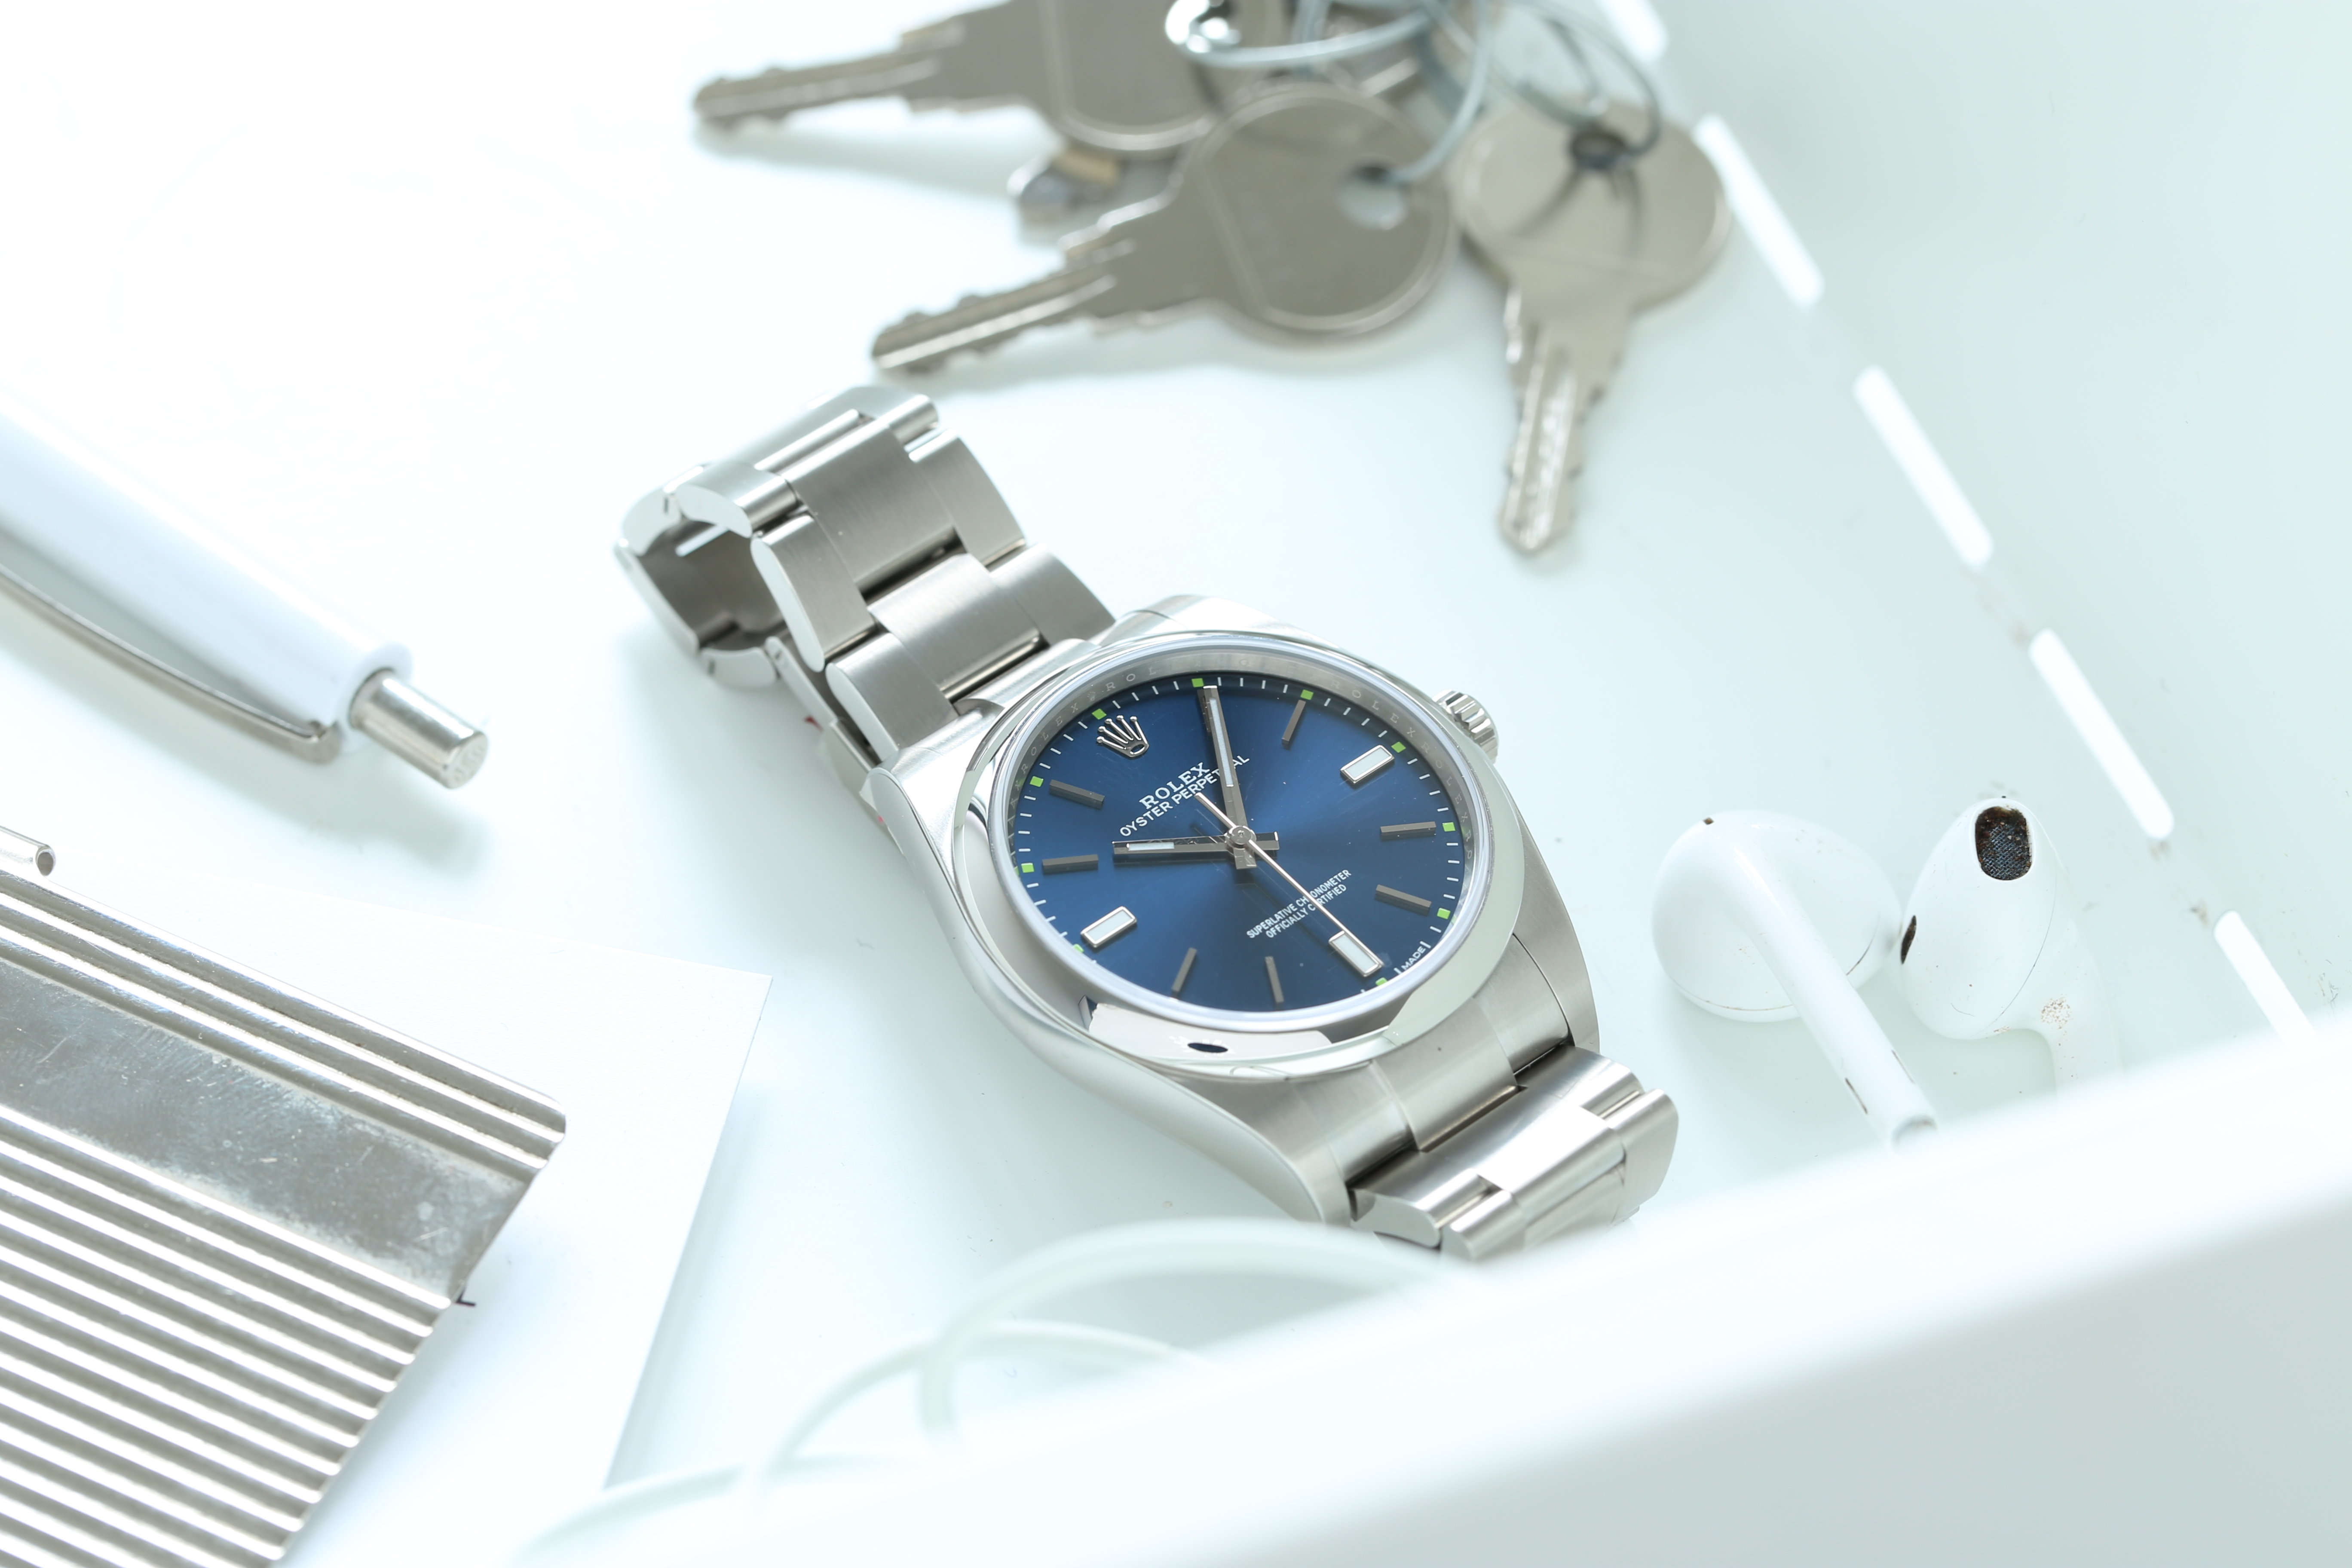 Rolex Oyster Perpetual watch with blue dial on a desk next to earpods, a pen and keys